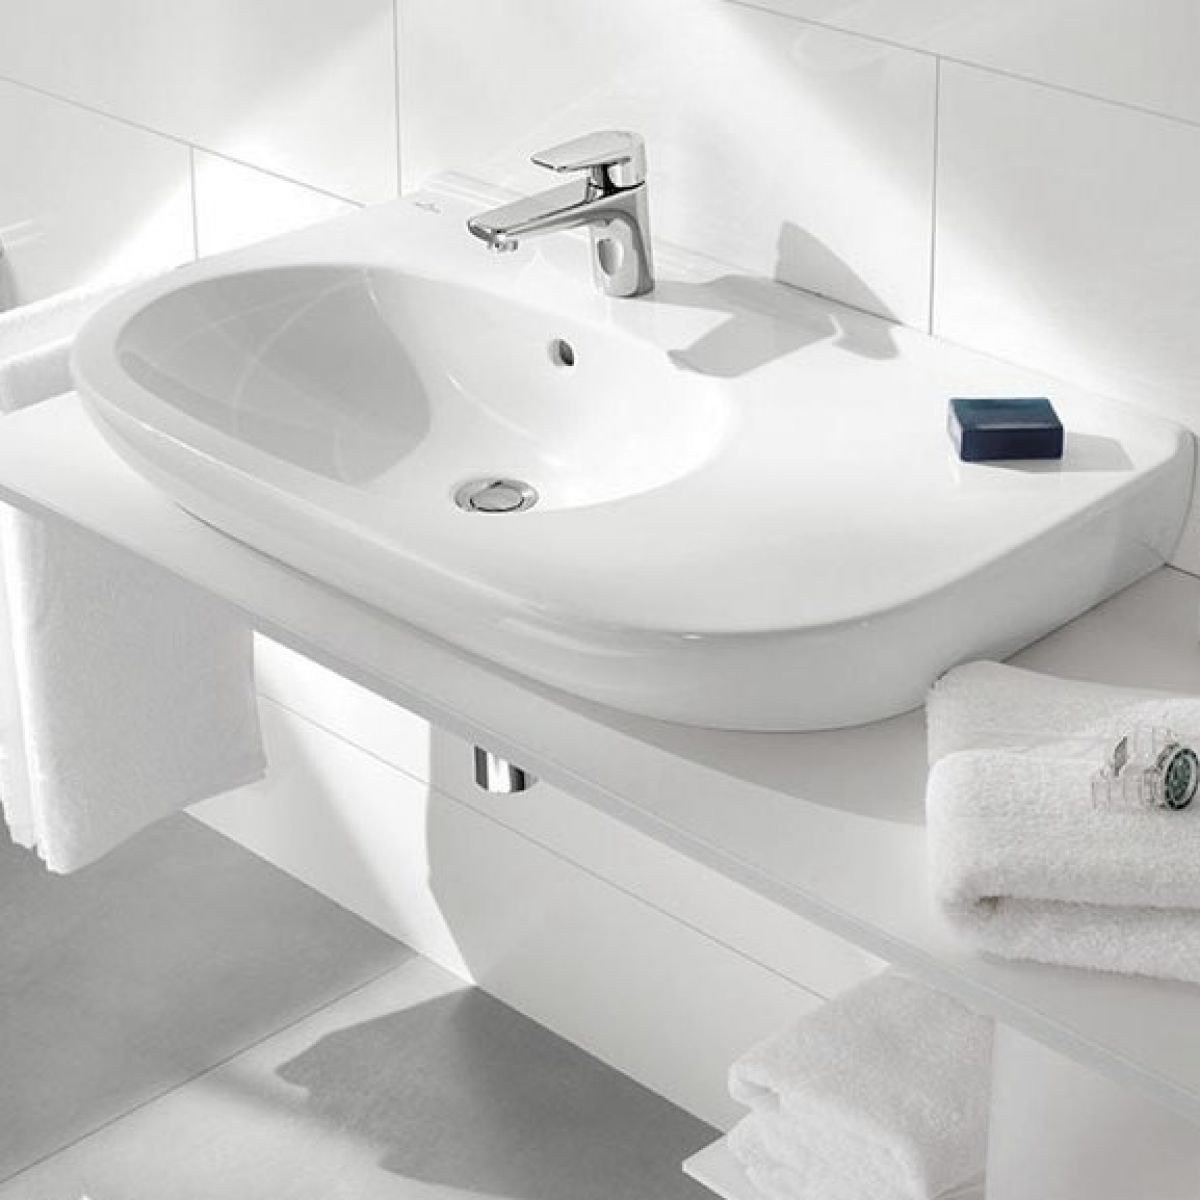 villeroy boch o novo offset washbasin uk bathrooms. Black Bedroom Furniture Sets. Home Design Ideas